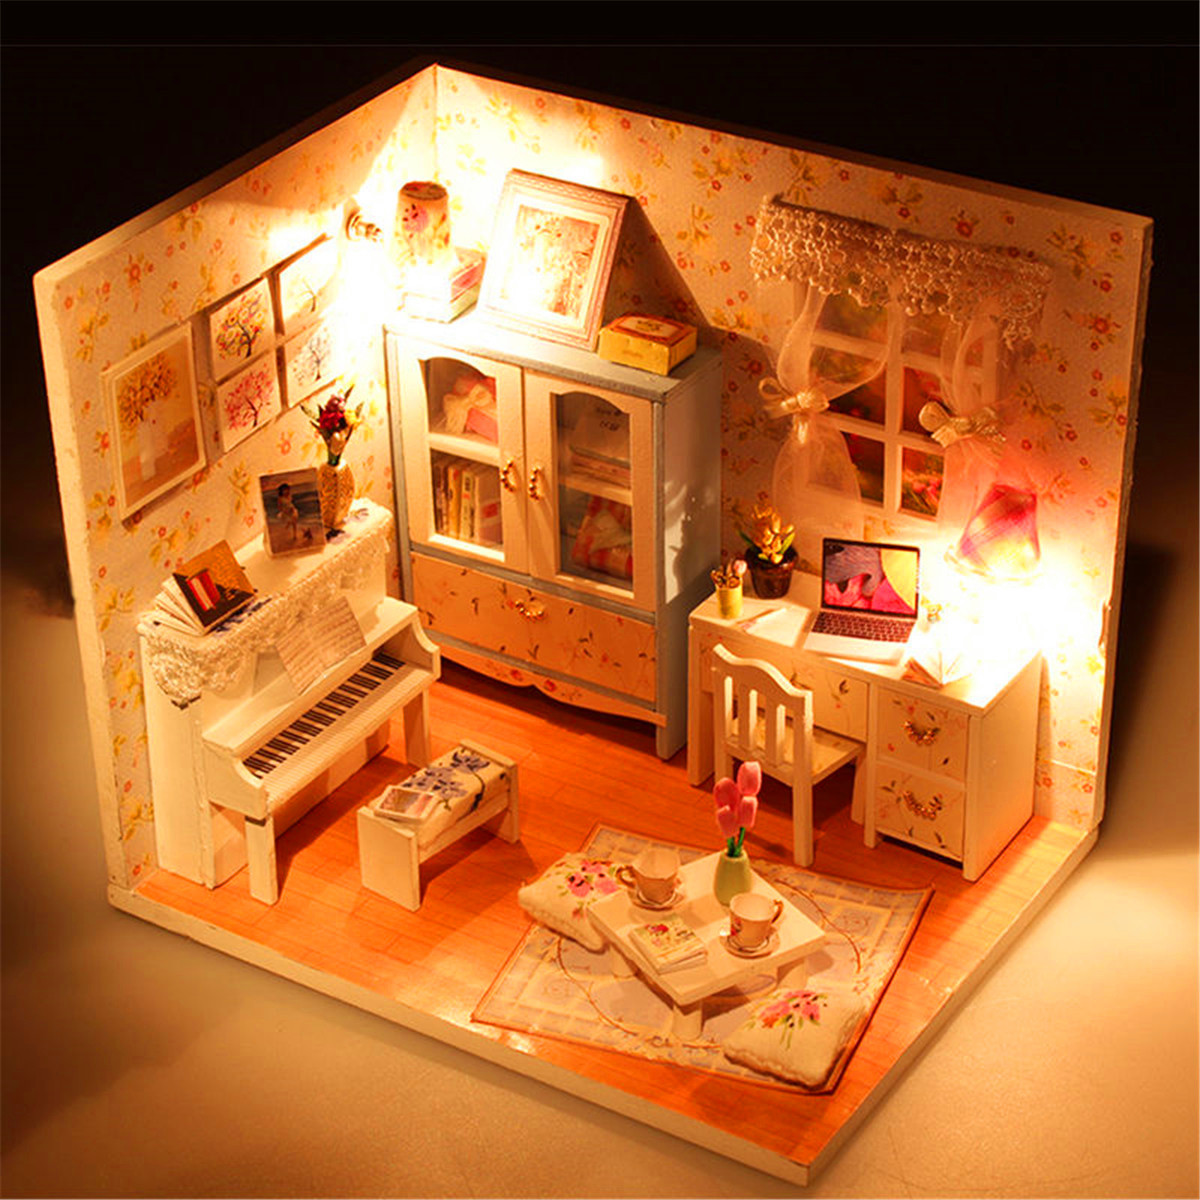 Hoomeda DIY Wood Dollhouse Miniature With LED+Furniture+Cover Doll House Room doll house furniture diy building model wooden miniature dollhouse puzzle toys for children birthday christmas gifts happy coast